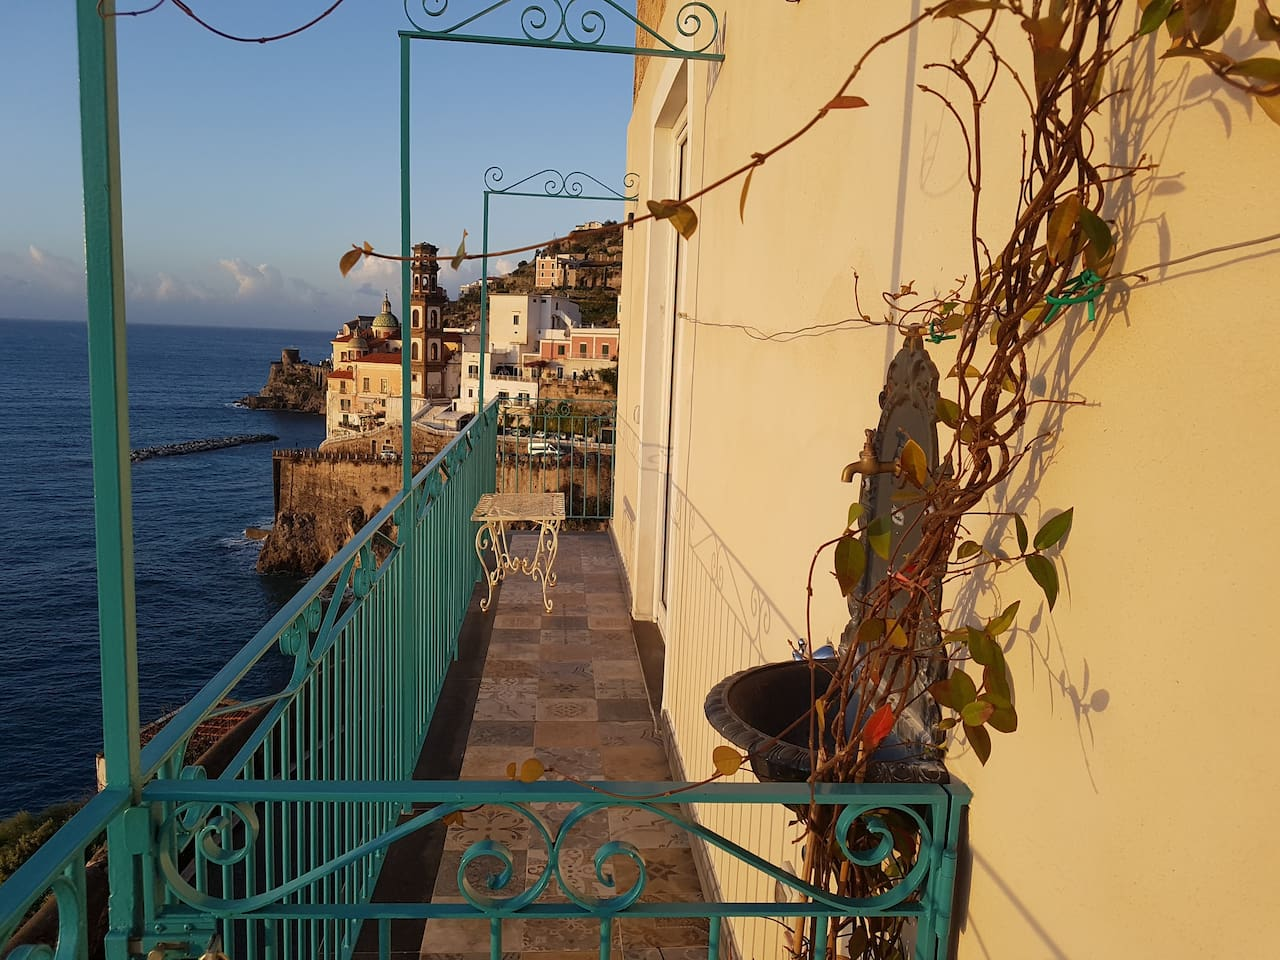 Our balcony. View over Atrani, Amalfi